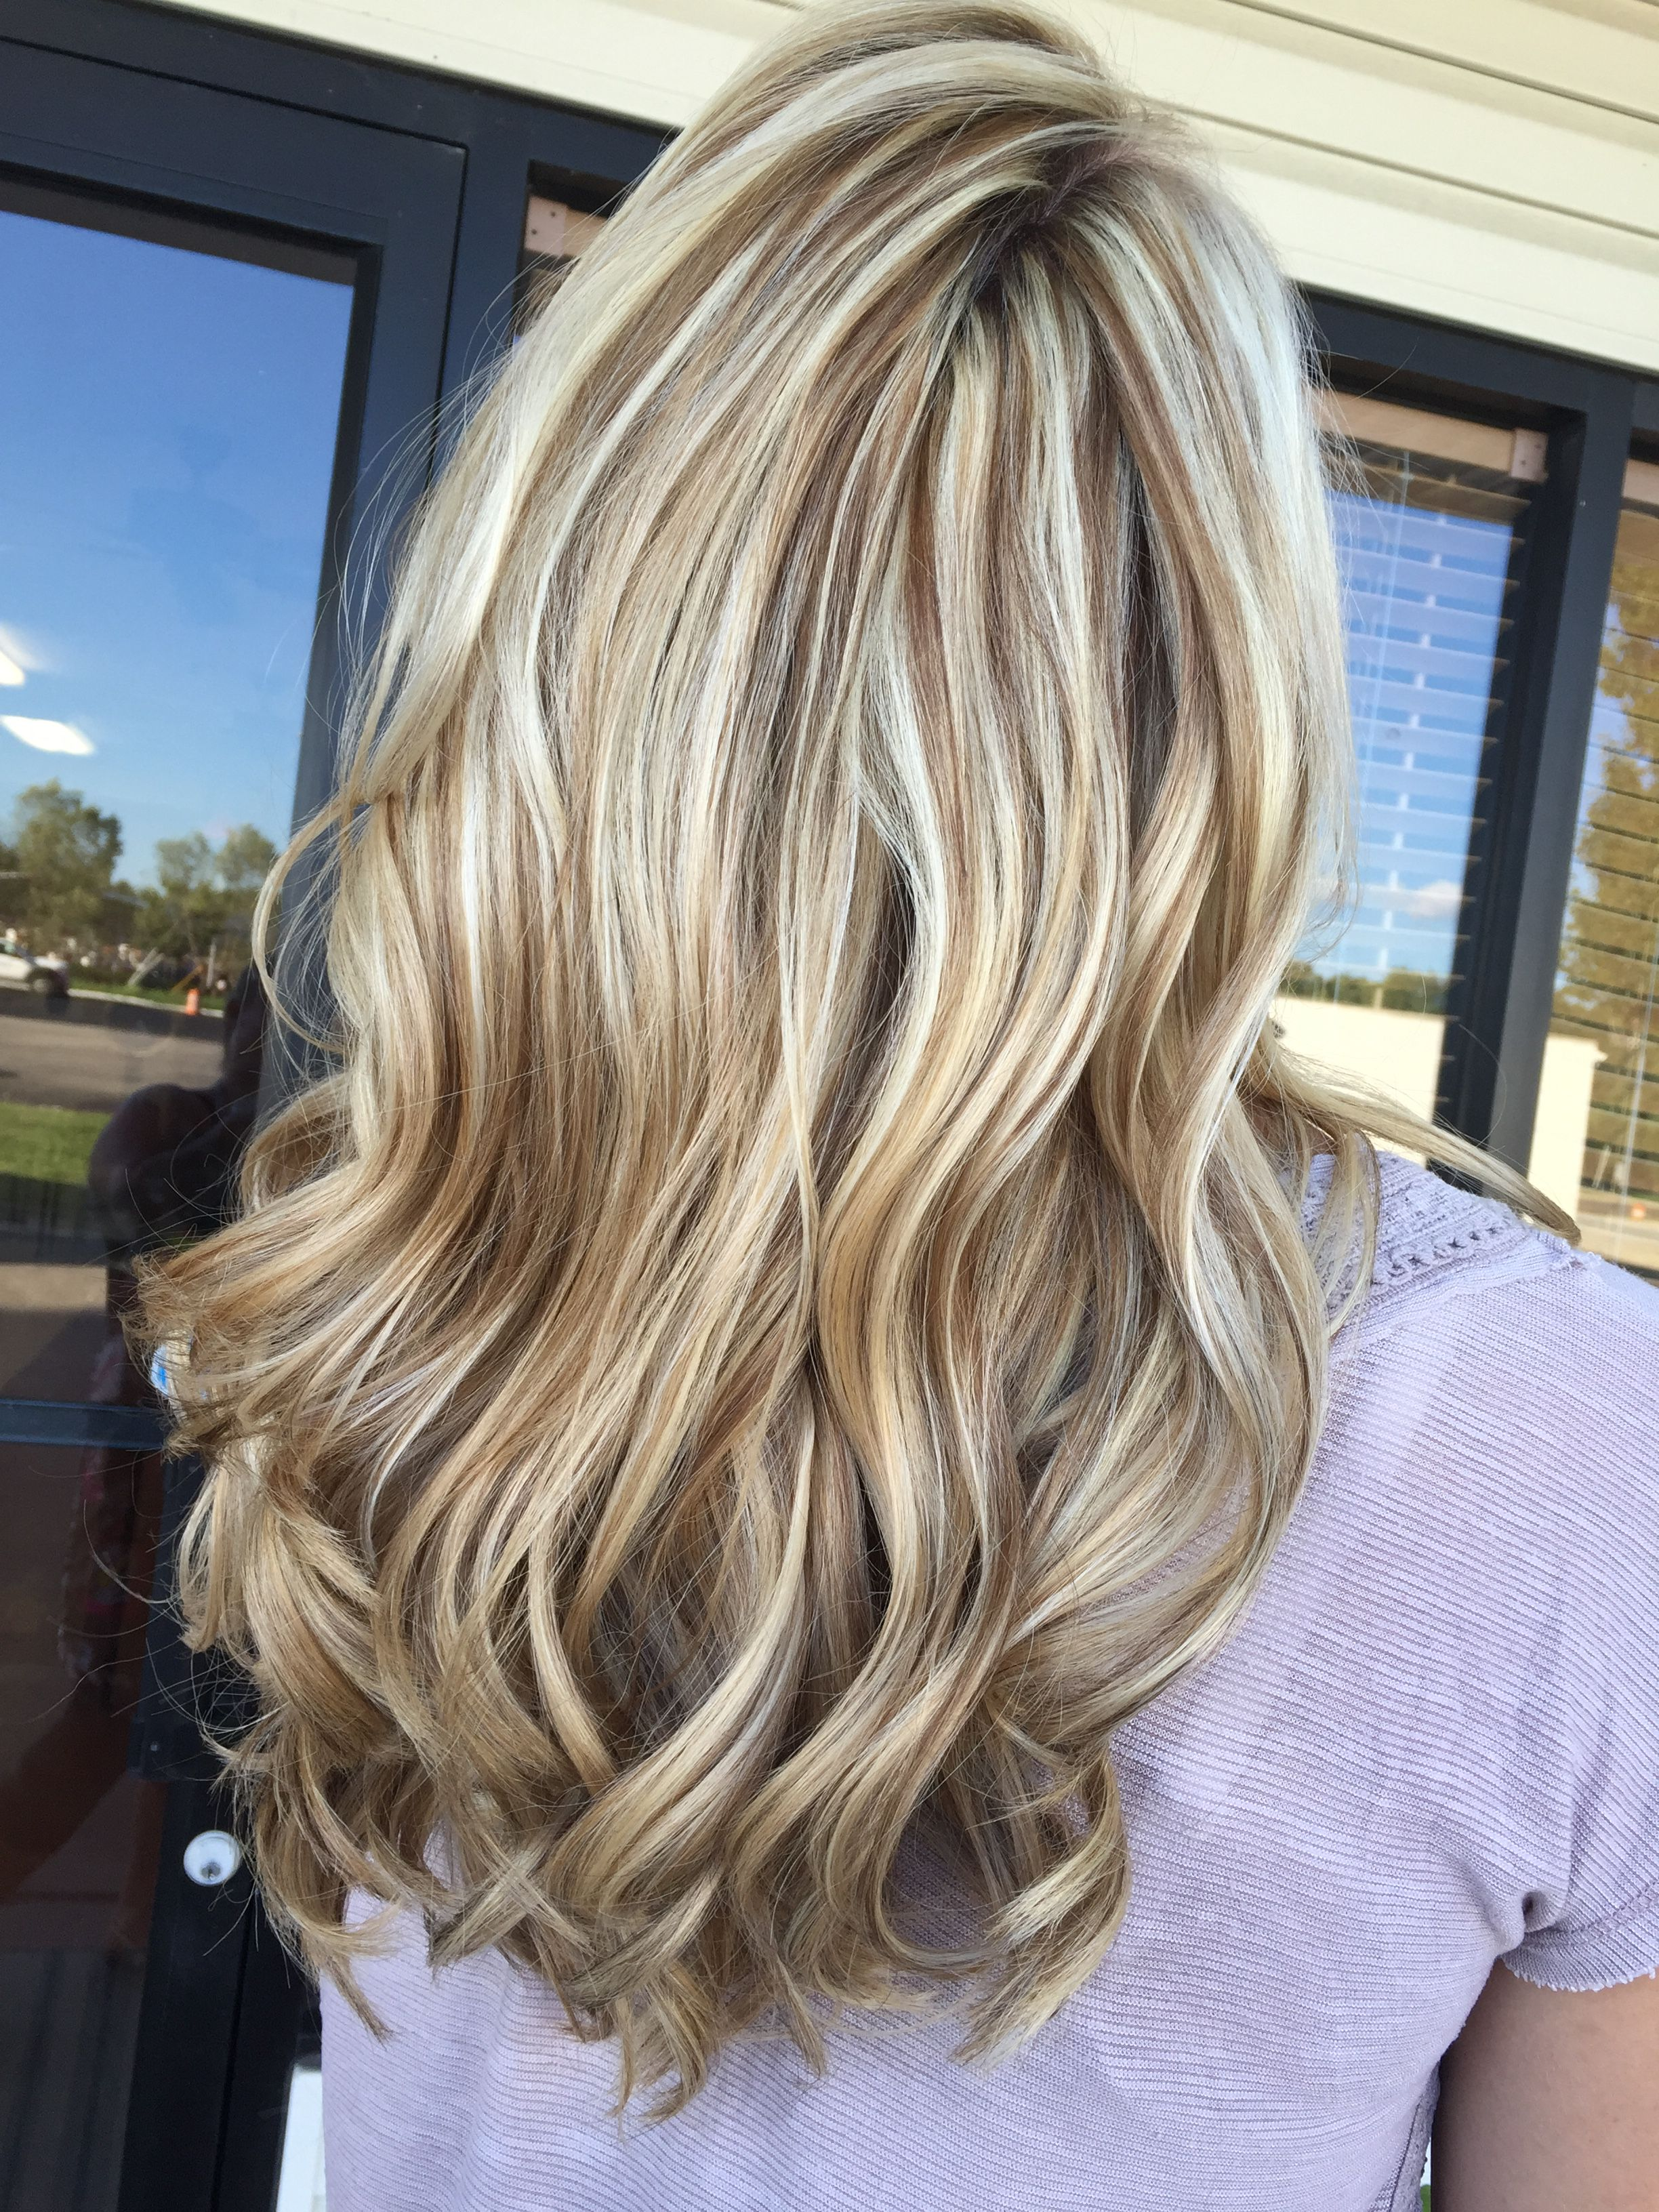 full hd cute blonde hair ideas of hairstyles laptop high resolution ice and cholate brown lowlight